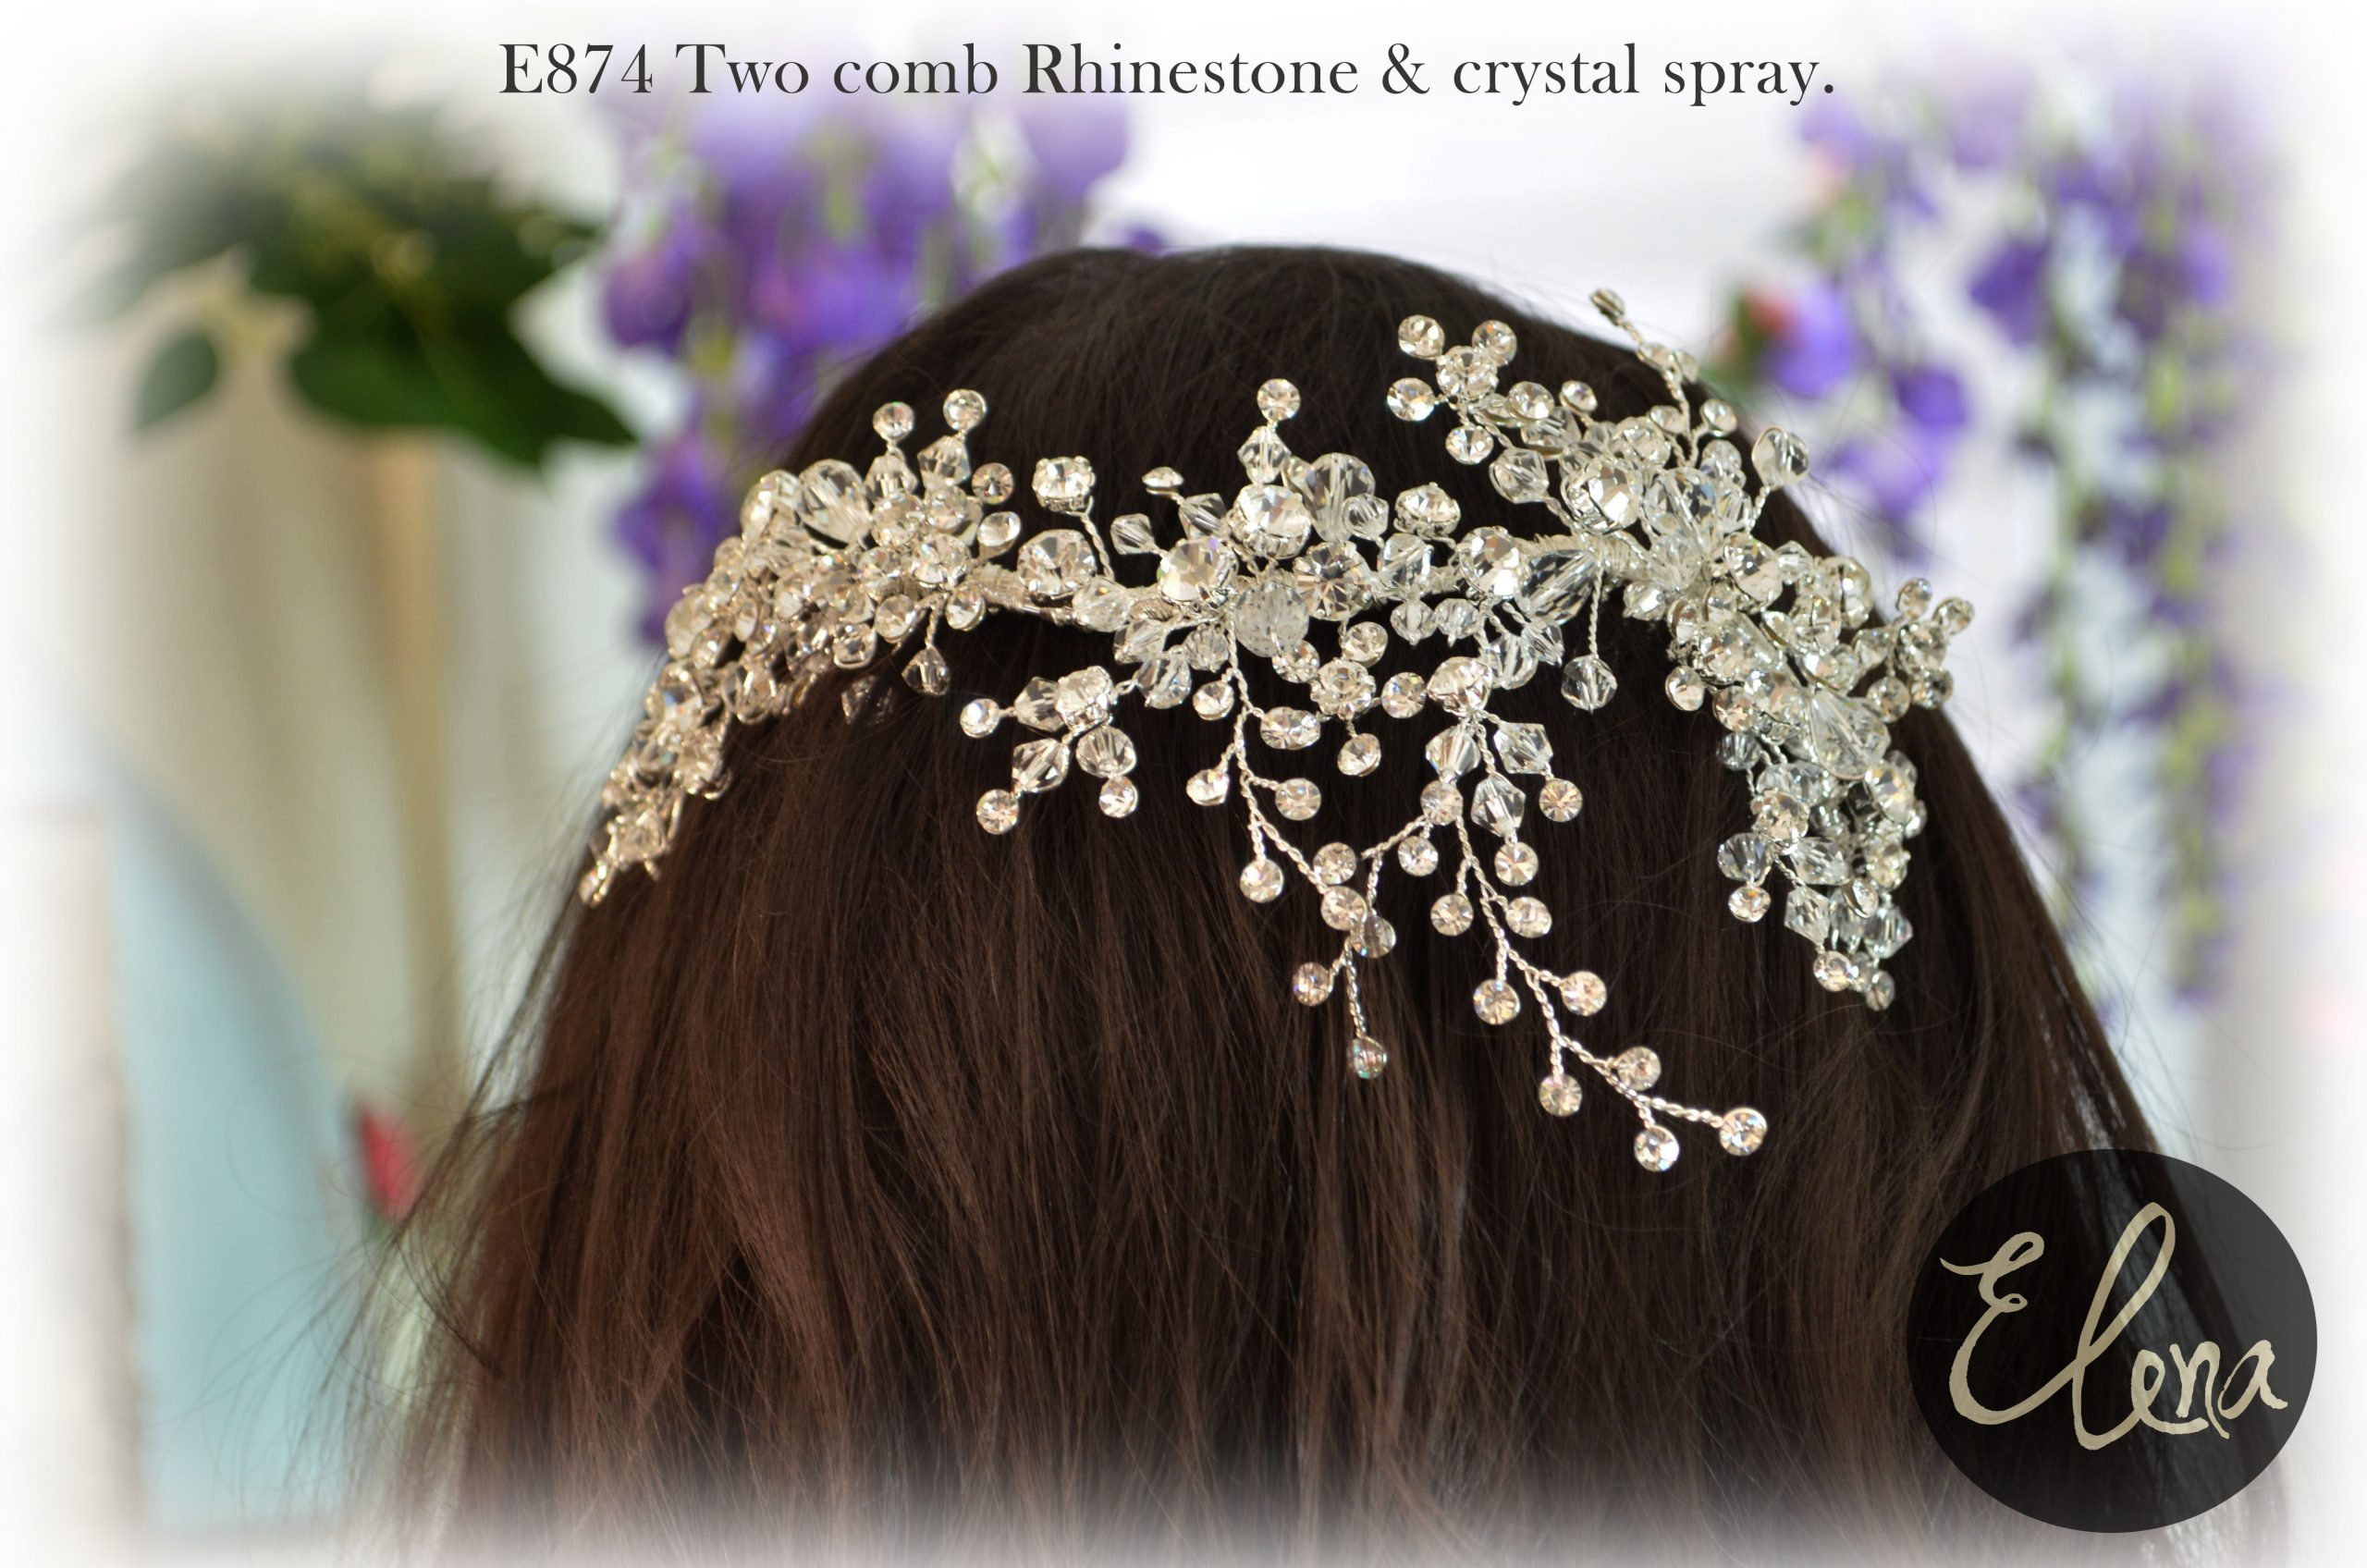 Elena E874 headpiece.